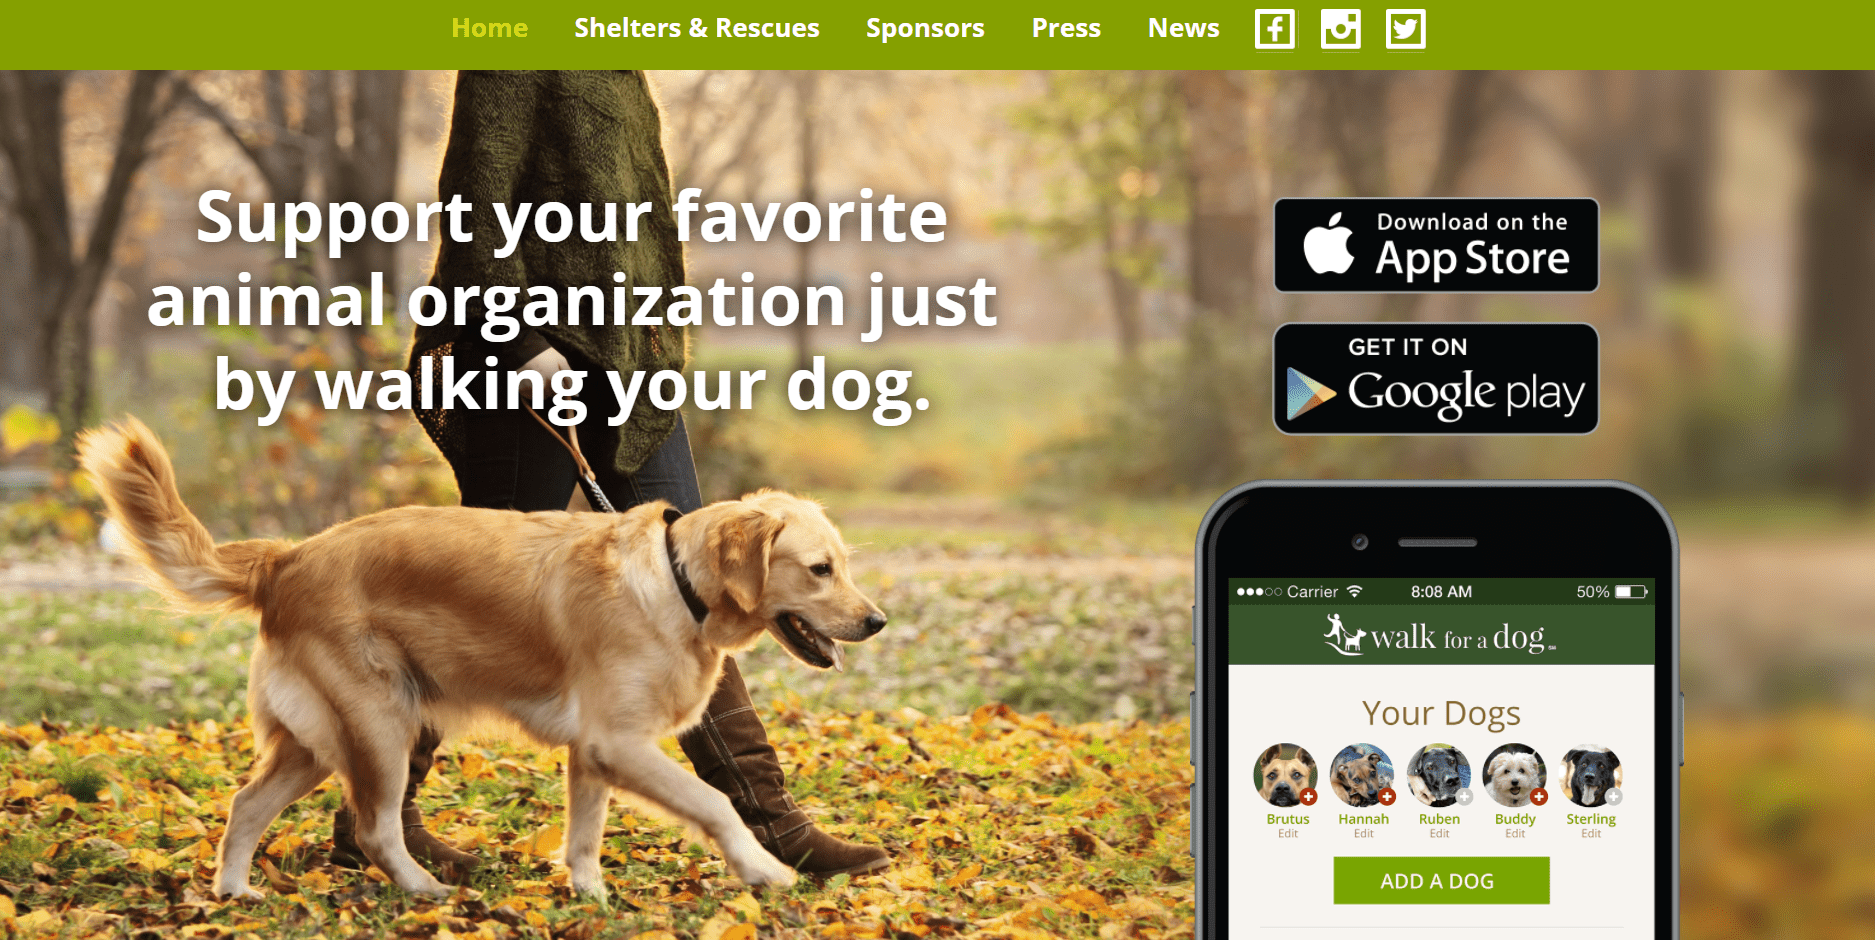 A dog walking app for charity.